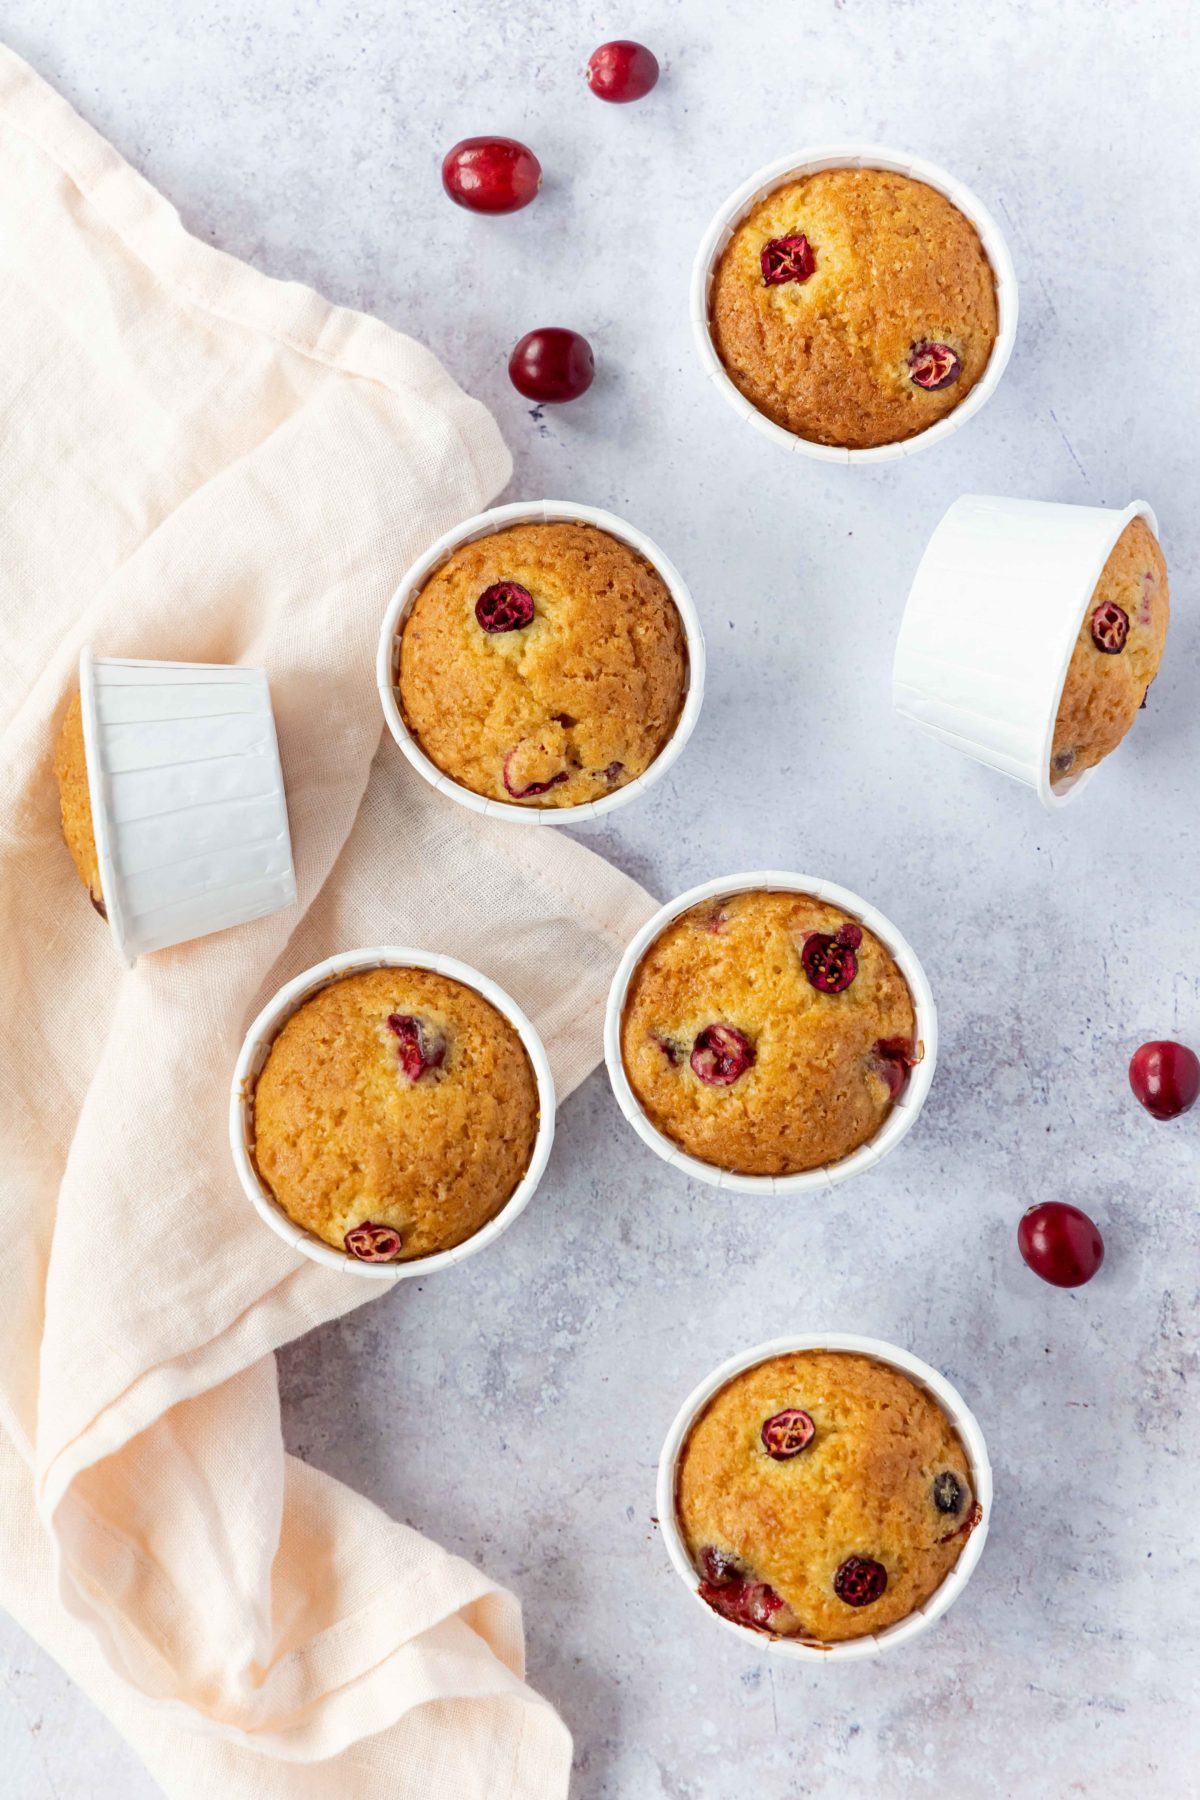 Vegane Cranberry Orangen Muffins // vegan cranberry and orange muffins by https://babyrockmyday.com/vegane-cranberry-orangen-muffins/